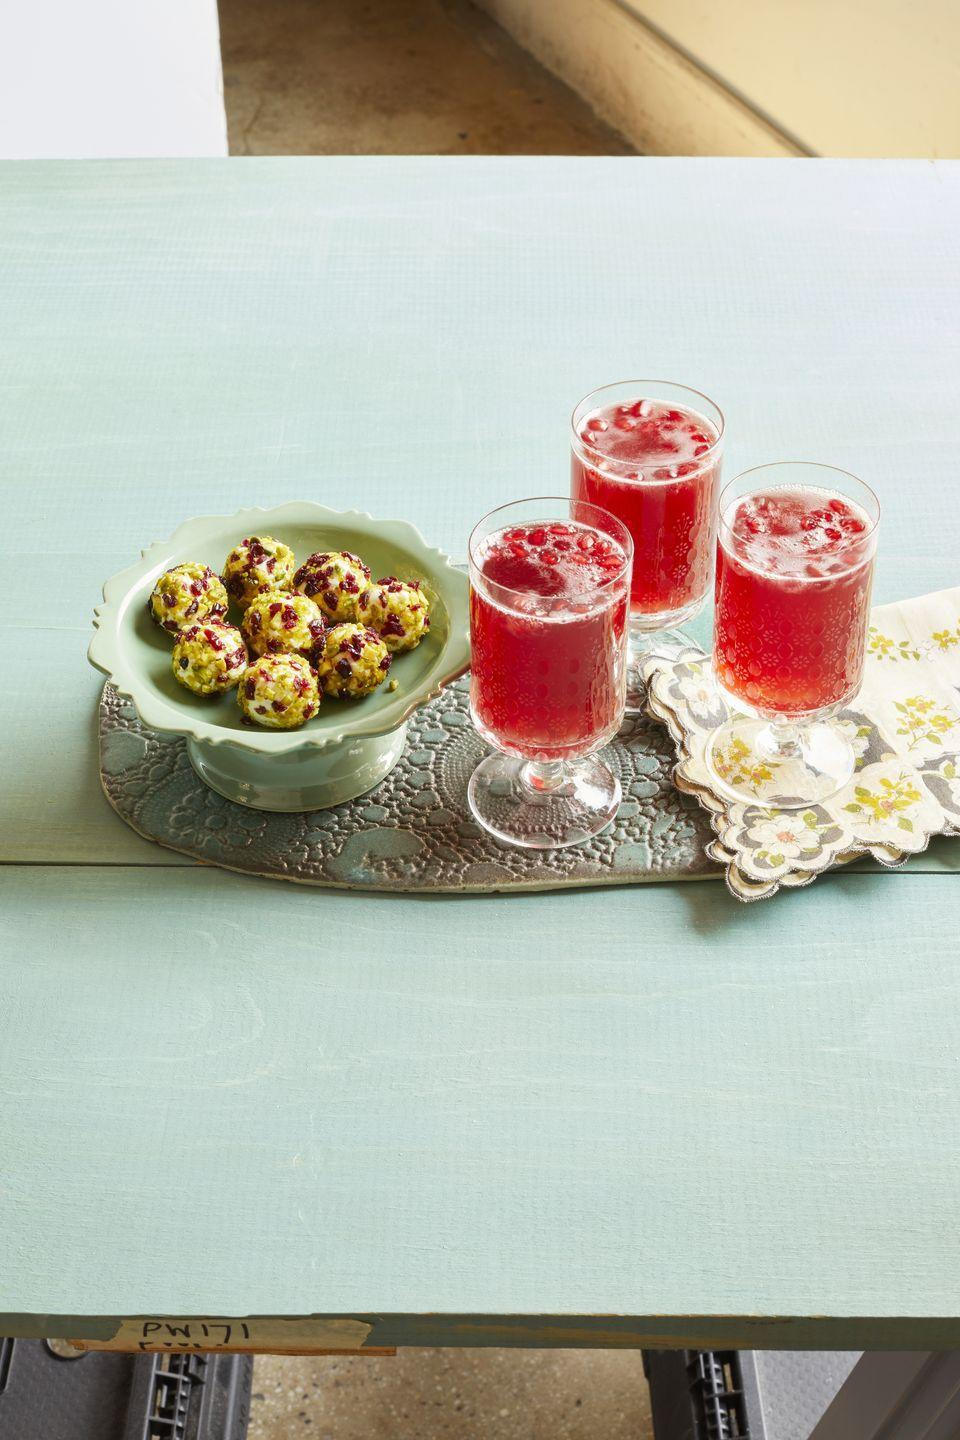 """<p>Elevate a glass of sparkling white wine with pomegranate seeds and pomegranate juice. It's what your <a href=""""https://www.thepioneerwoman.com/food-cooking/meals-menus/g33577310/thanksgiving-menu/"""" rel=""""nofollow noopener"""" target=""""_blank"""" data-ylk=""""slk:Thanksgiving menu"""" class=""""link rapid-noclick-resp"""">Thanksgiving menu </a>needs! </p><p><strong><a href=""""https://www.thepioneerwoman.com/food-cooking/recipes/a32304789/pomegranate-sparklers-recipe/"""" rel=""""nofollow noopener"""" target=""""_blank"""" data-ylk=""""slk:Get the recipe."""" class=""""link rapid-noclick-resp"""">Get the recipe.</a></strong></p><p><a class=""""link rapid-noclick-resp"""" href=""""https://go.redirectingat.com?id=74968X1596630&url=https%3A%2F%2Fwww.walmart.com%2Fbrowse%2Fhome%2Fcocktail-liquor-glasses%2F4044_623679_639999_6972768_1254708&sref=https%3A%2F%2Fwww.thepioneerwoman.com%2Ffood-cooking%2Fmeals-menus%2Fg33510531%2Ffall-cocktail-recipes%2F"""" rel=""""nofollow noopener"""" target=""""_blank"""" data-ylk=""""slk:SHOP COCKTAIL GLASSES"""">SHOP COCKTAIL GLASSES</a> </p>"""